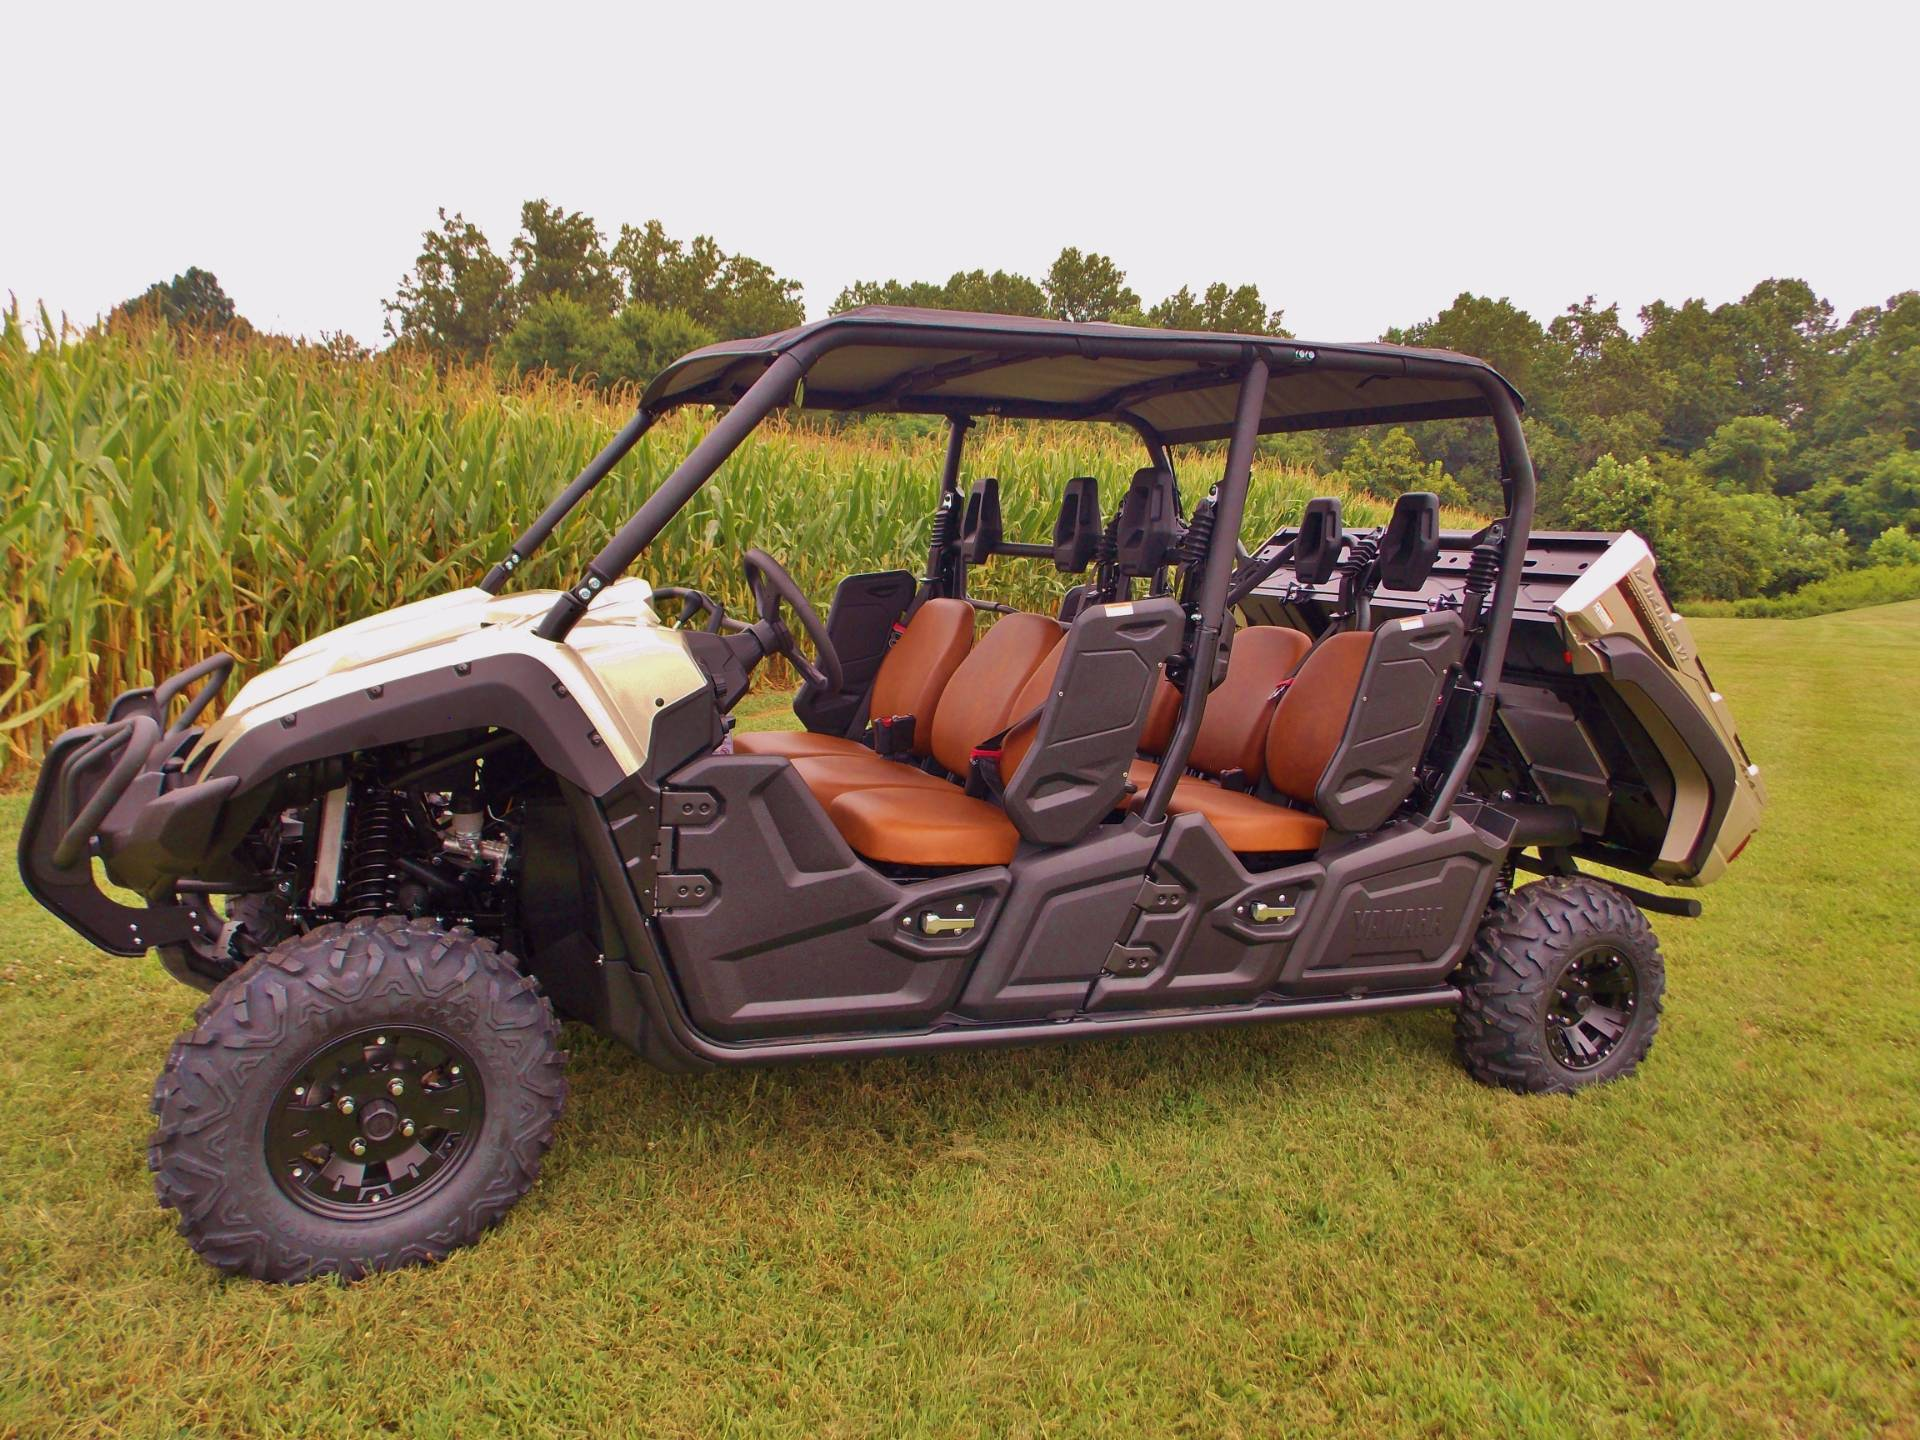 New 2018 yamaha viking vi eps ranch edition utility for Yamaha viking 6 seater top speed